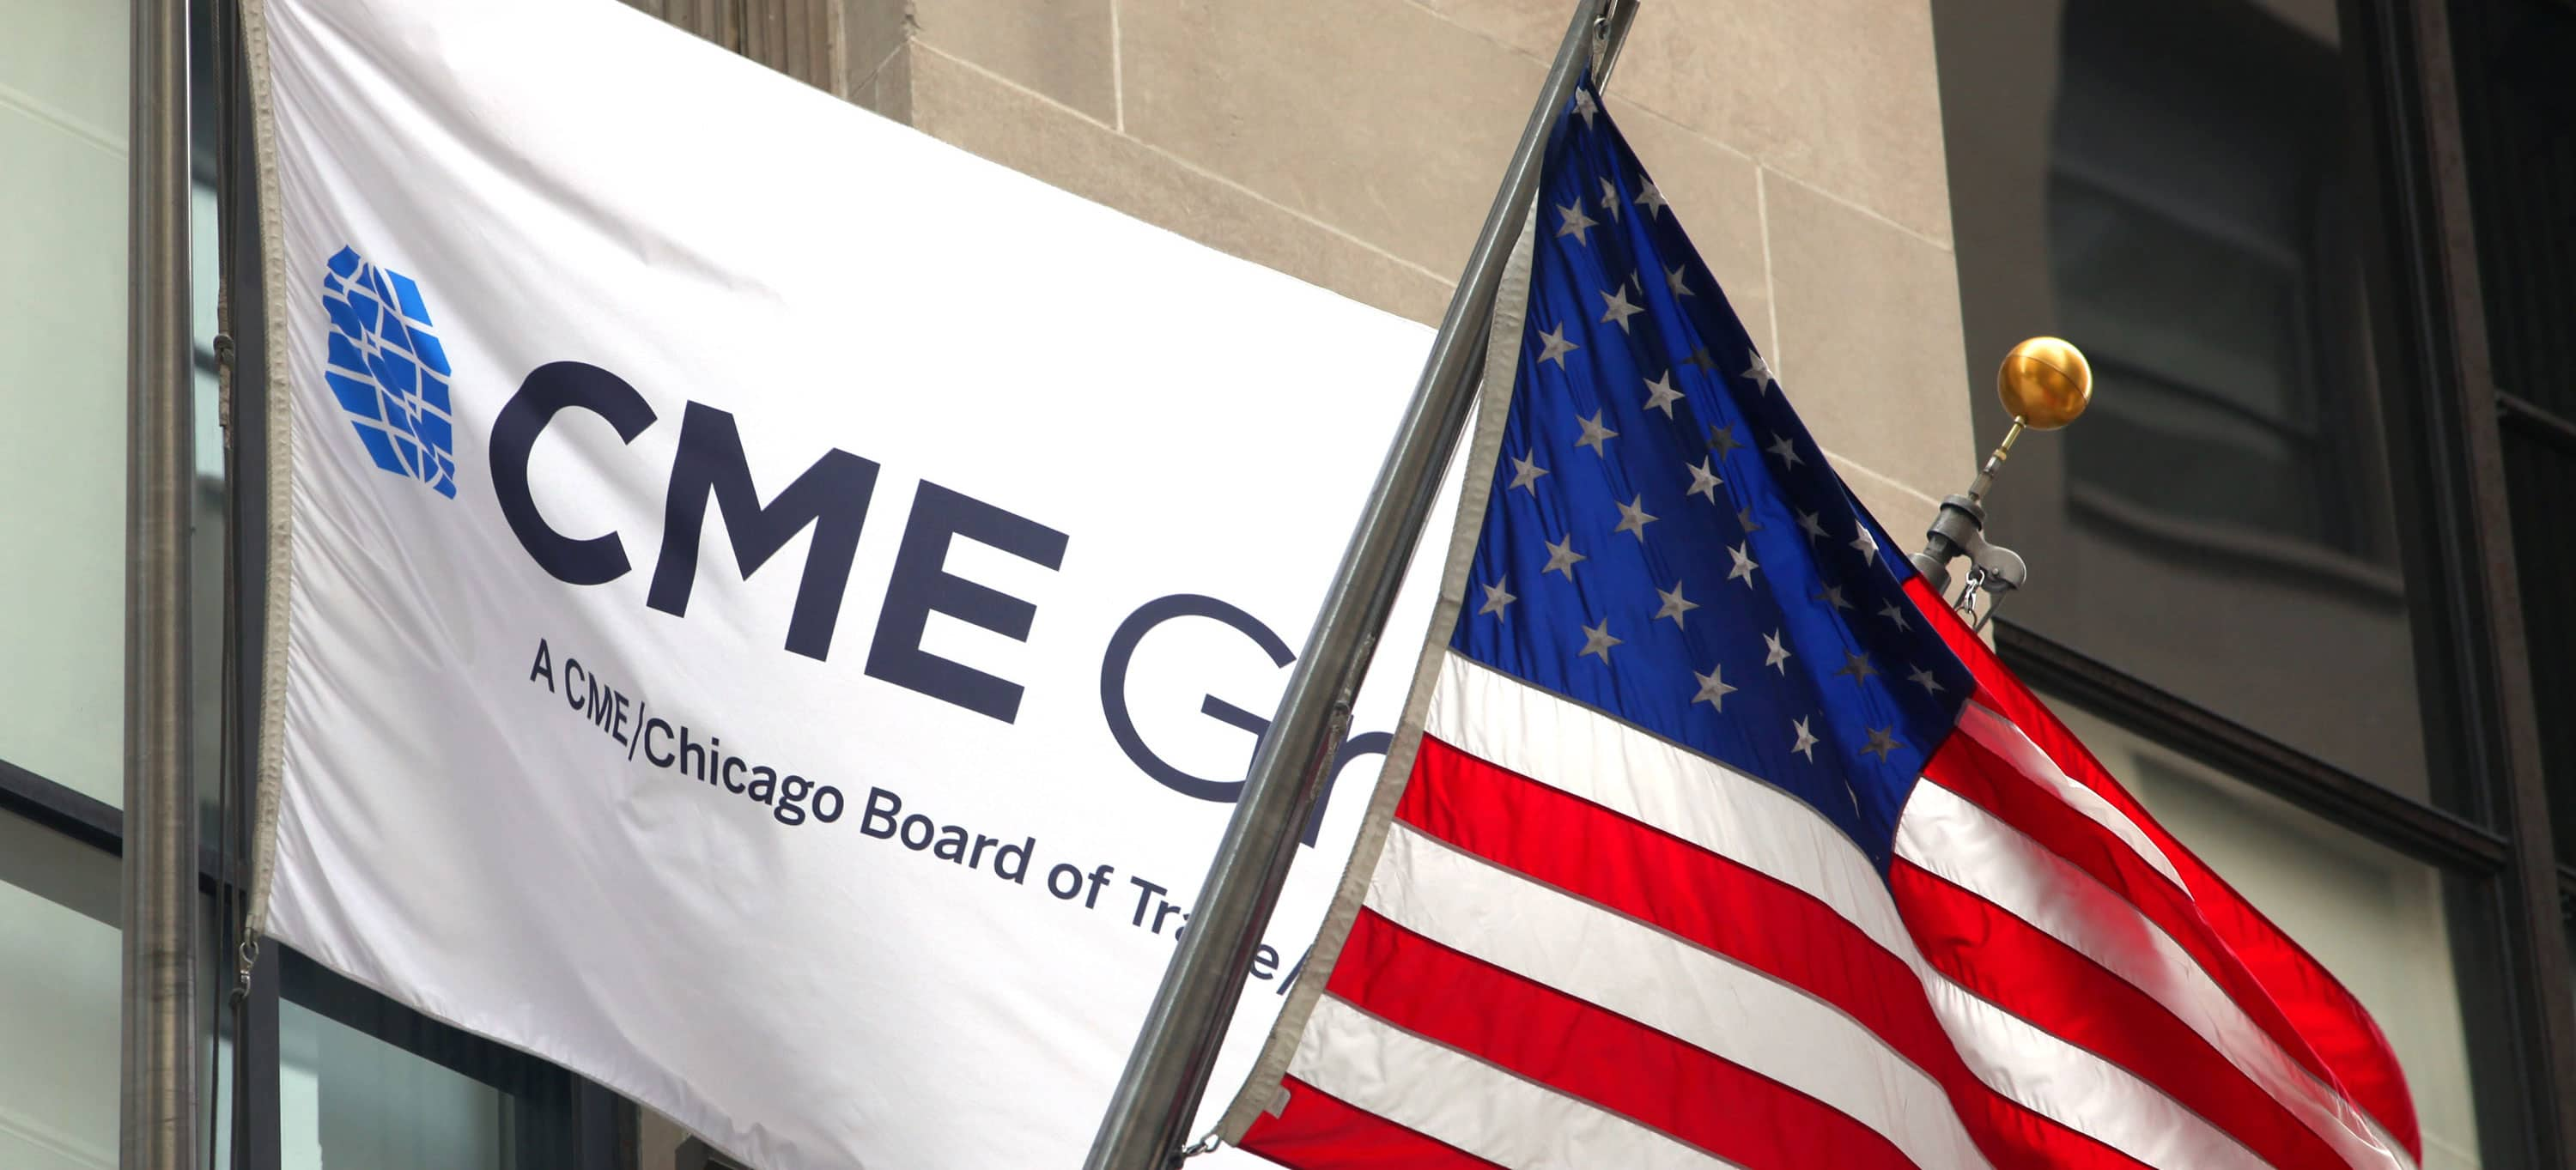 CME Group Adds Christopher Fix as Managing Director, Head of APAC